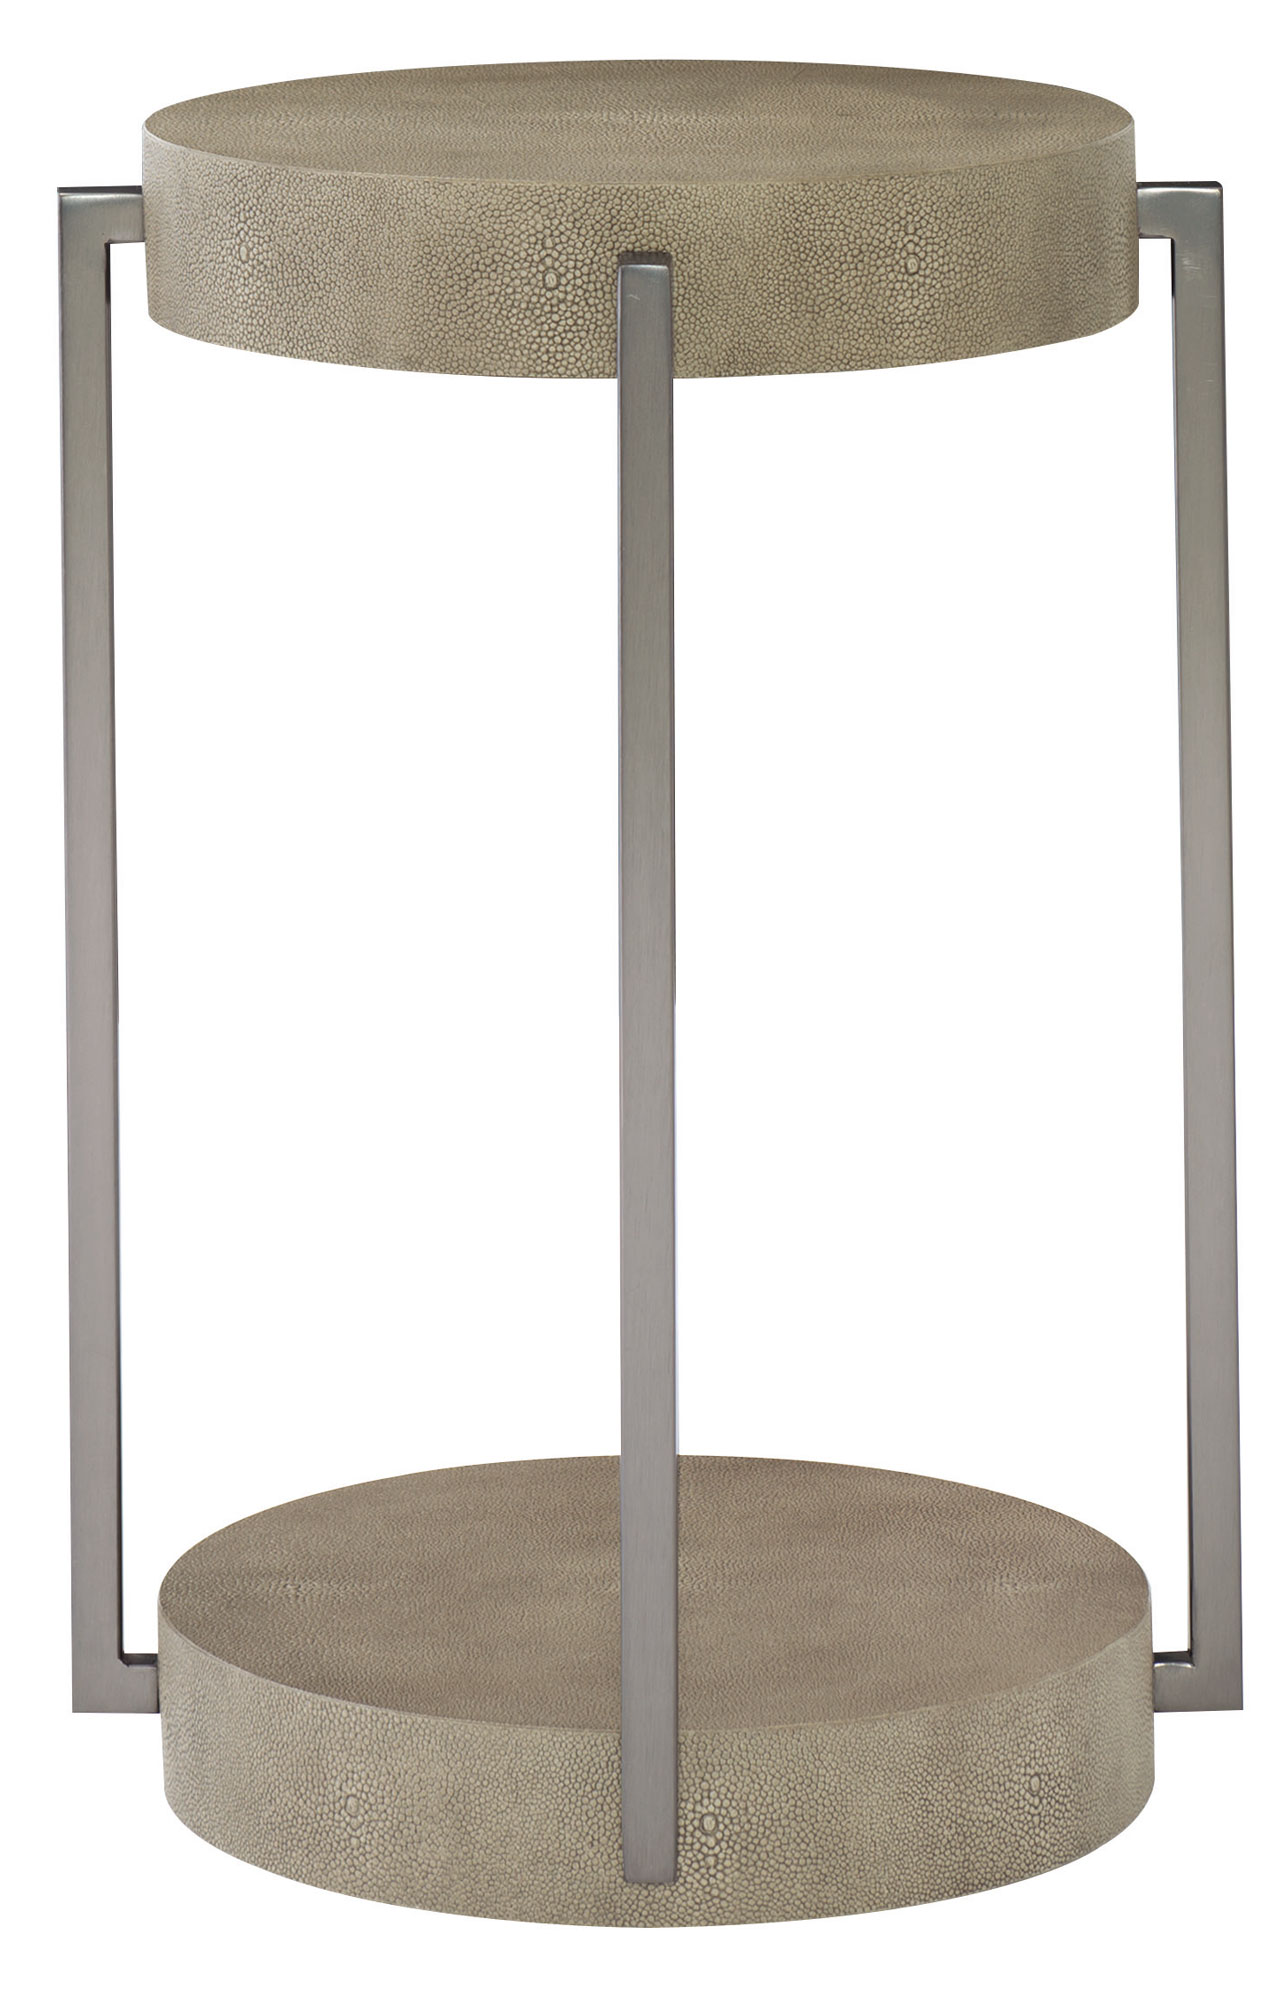 Mosaic Round End Table. Print Share. 1 / 2